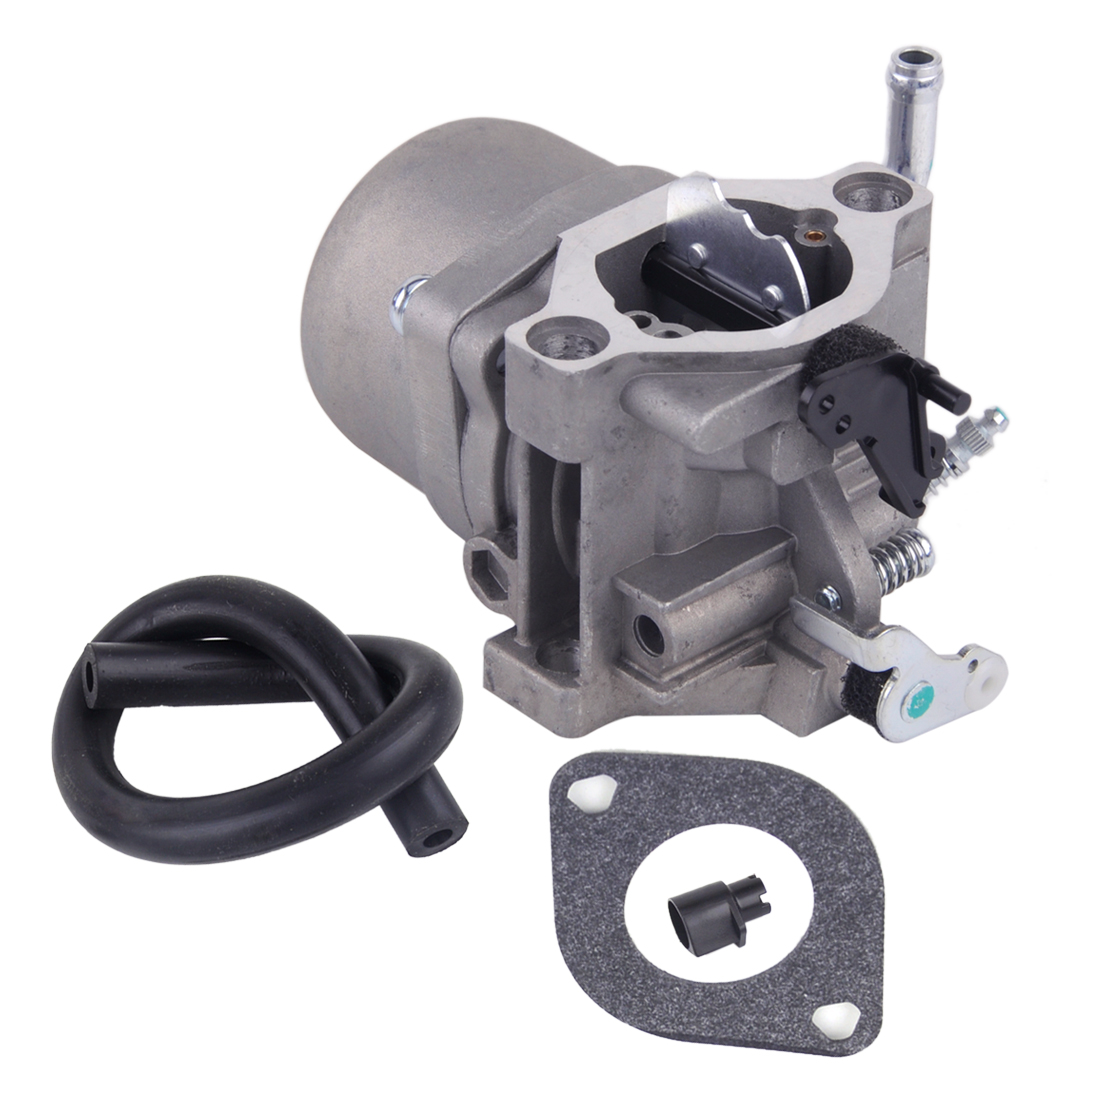 LETAOSK Carburetor Carb with Mounting Gasket Fit for Briggs & Stratton 590399 796077 ReplacementAccessories